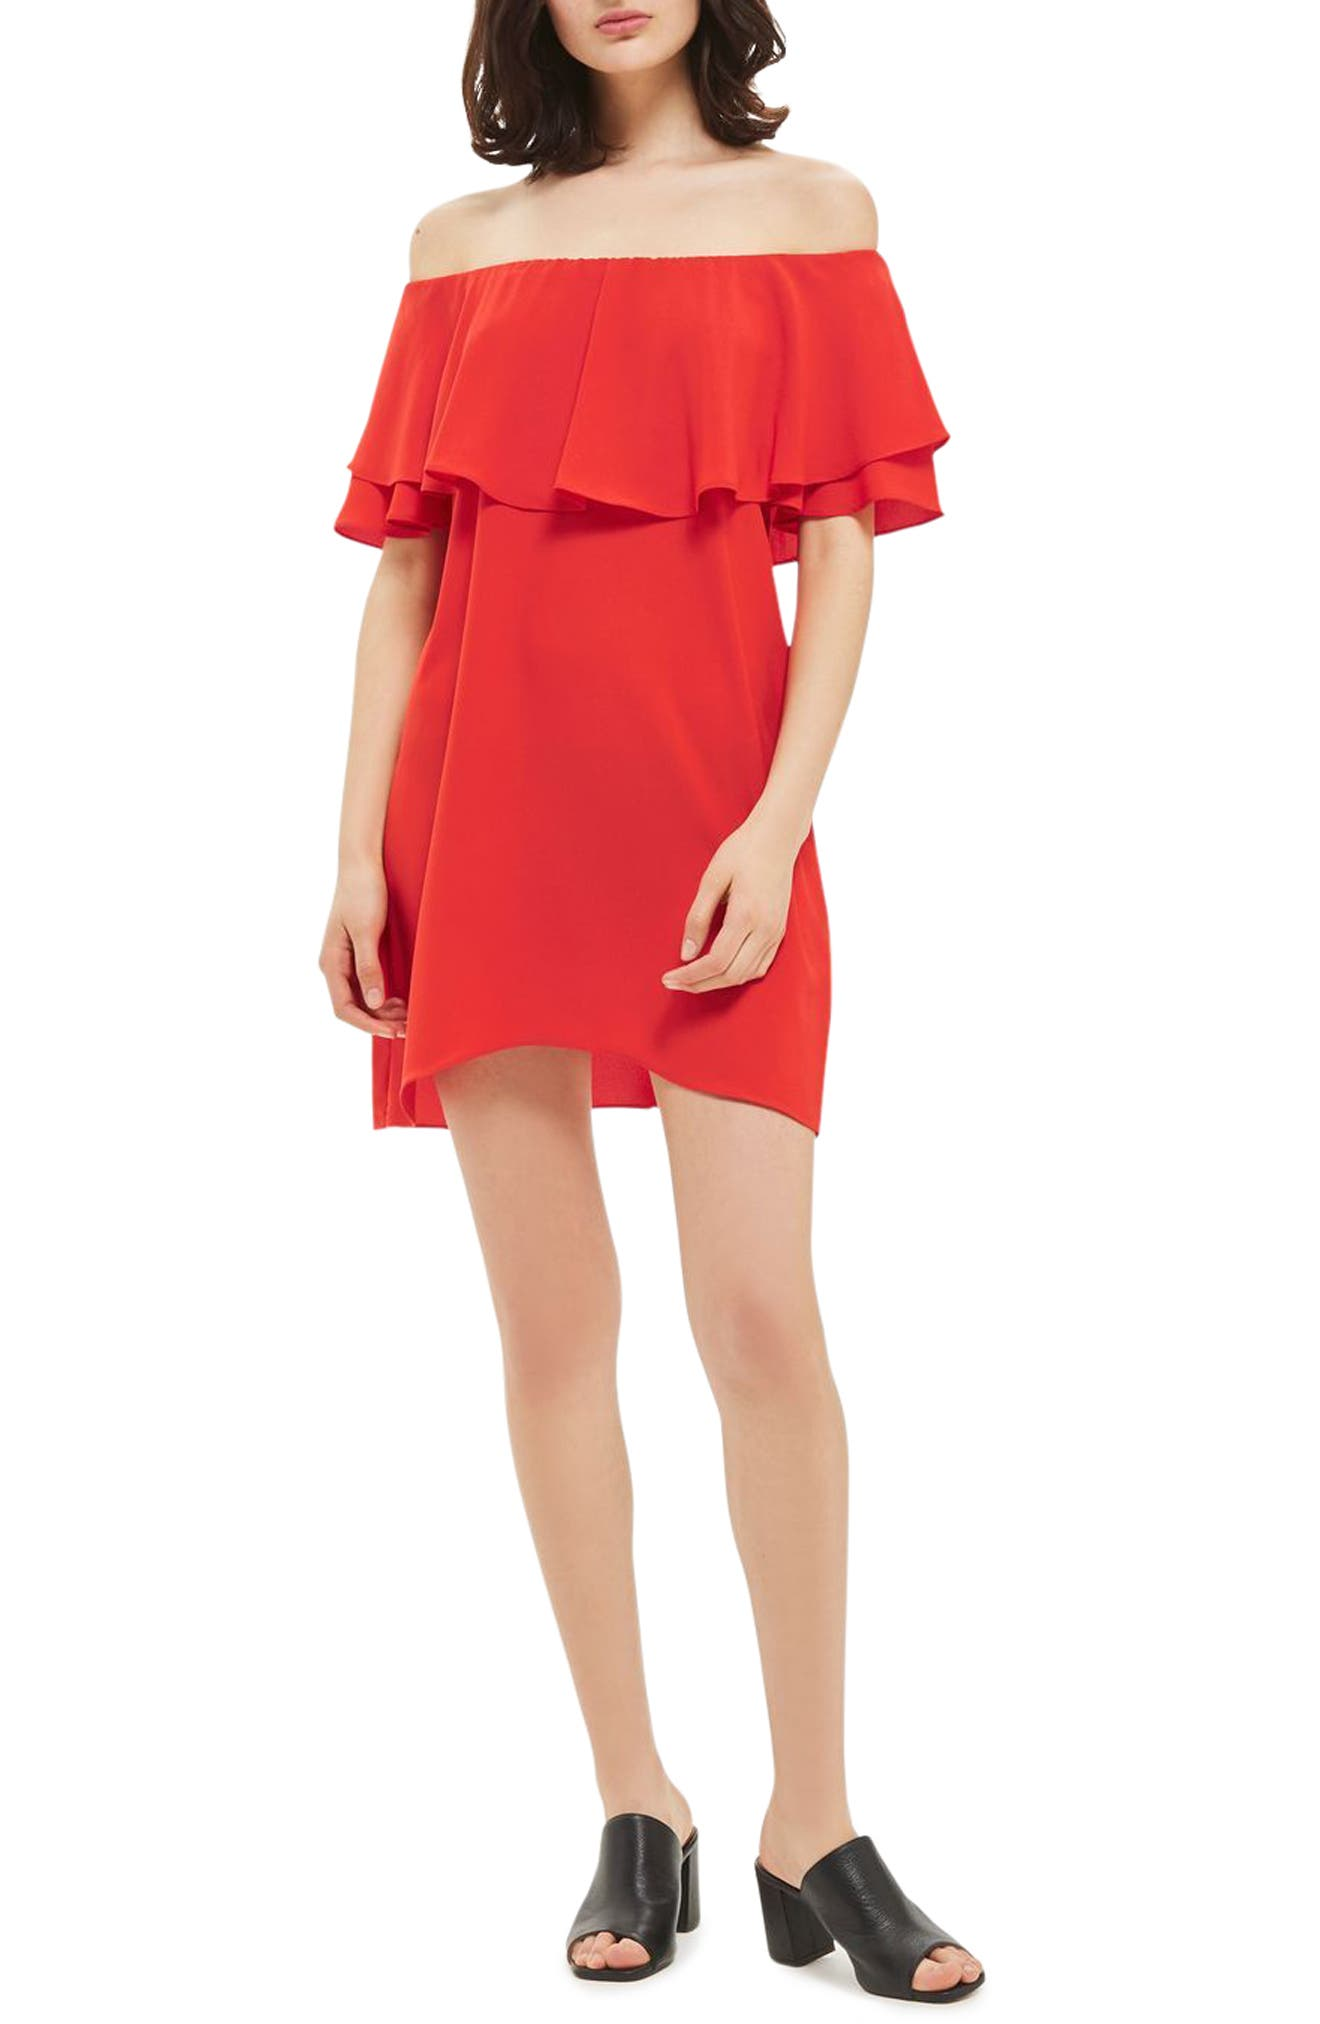 Topshop Bardot Popover Shift Dress